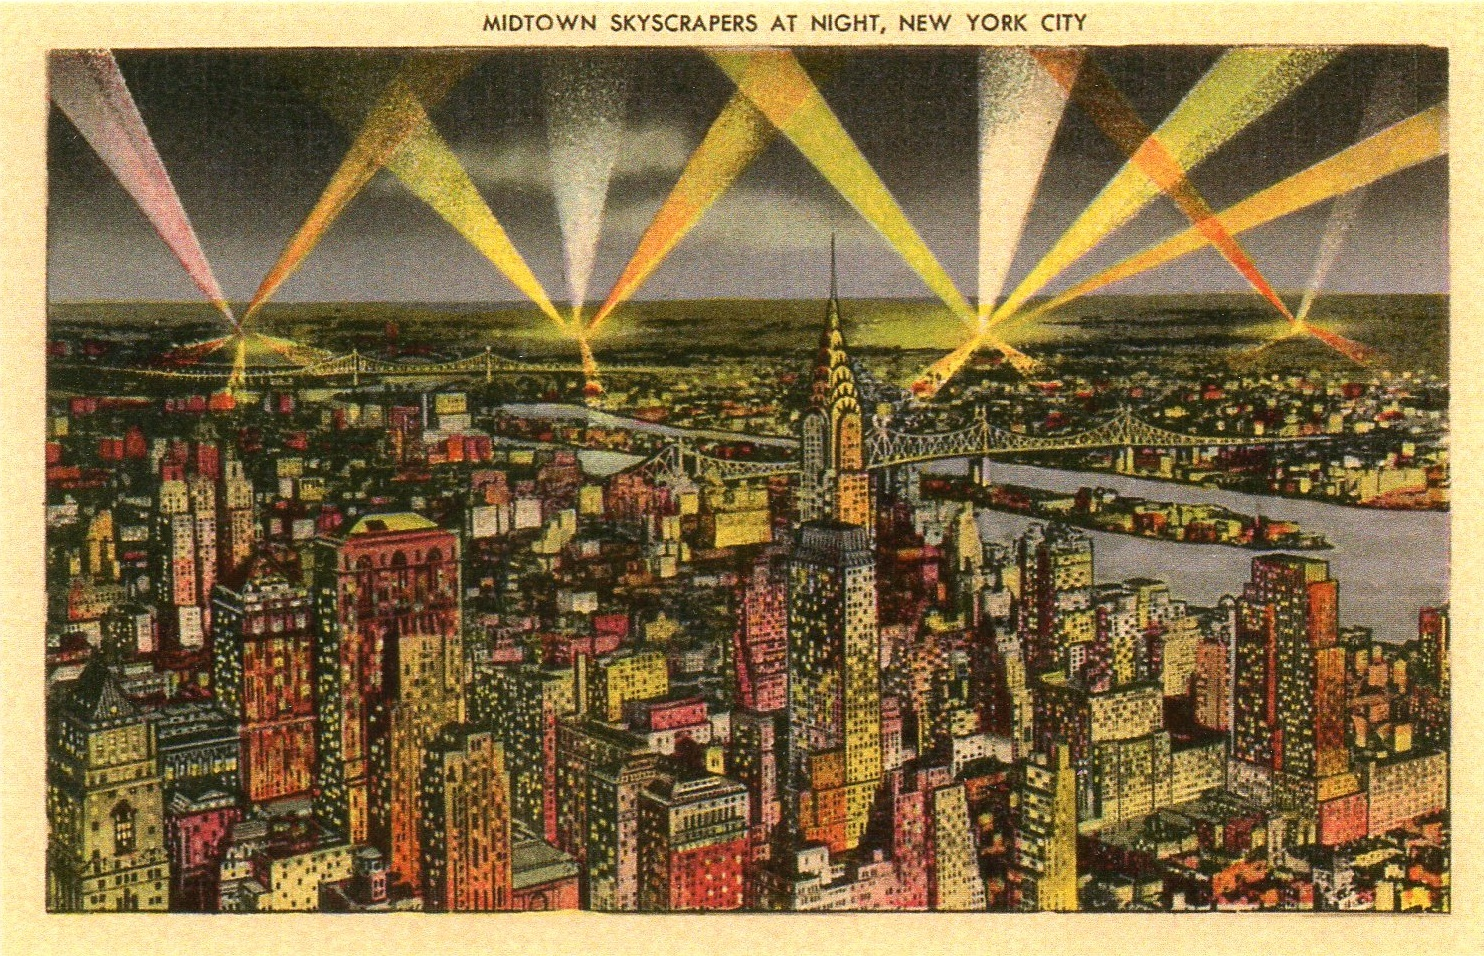 Vintage Art Deco Postcard - Photo source: Ephemeral New York